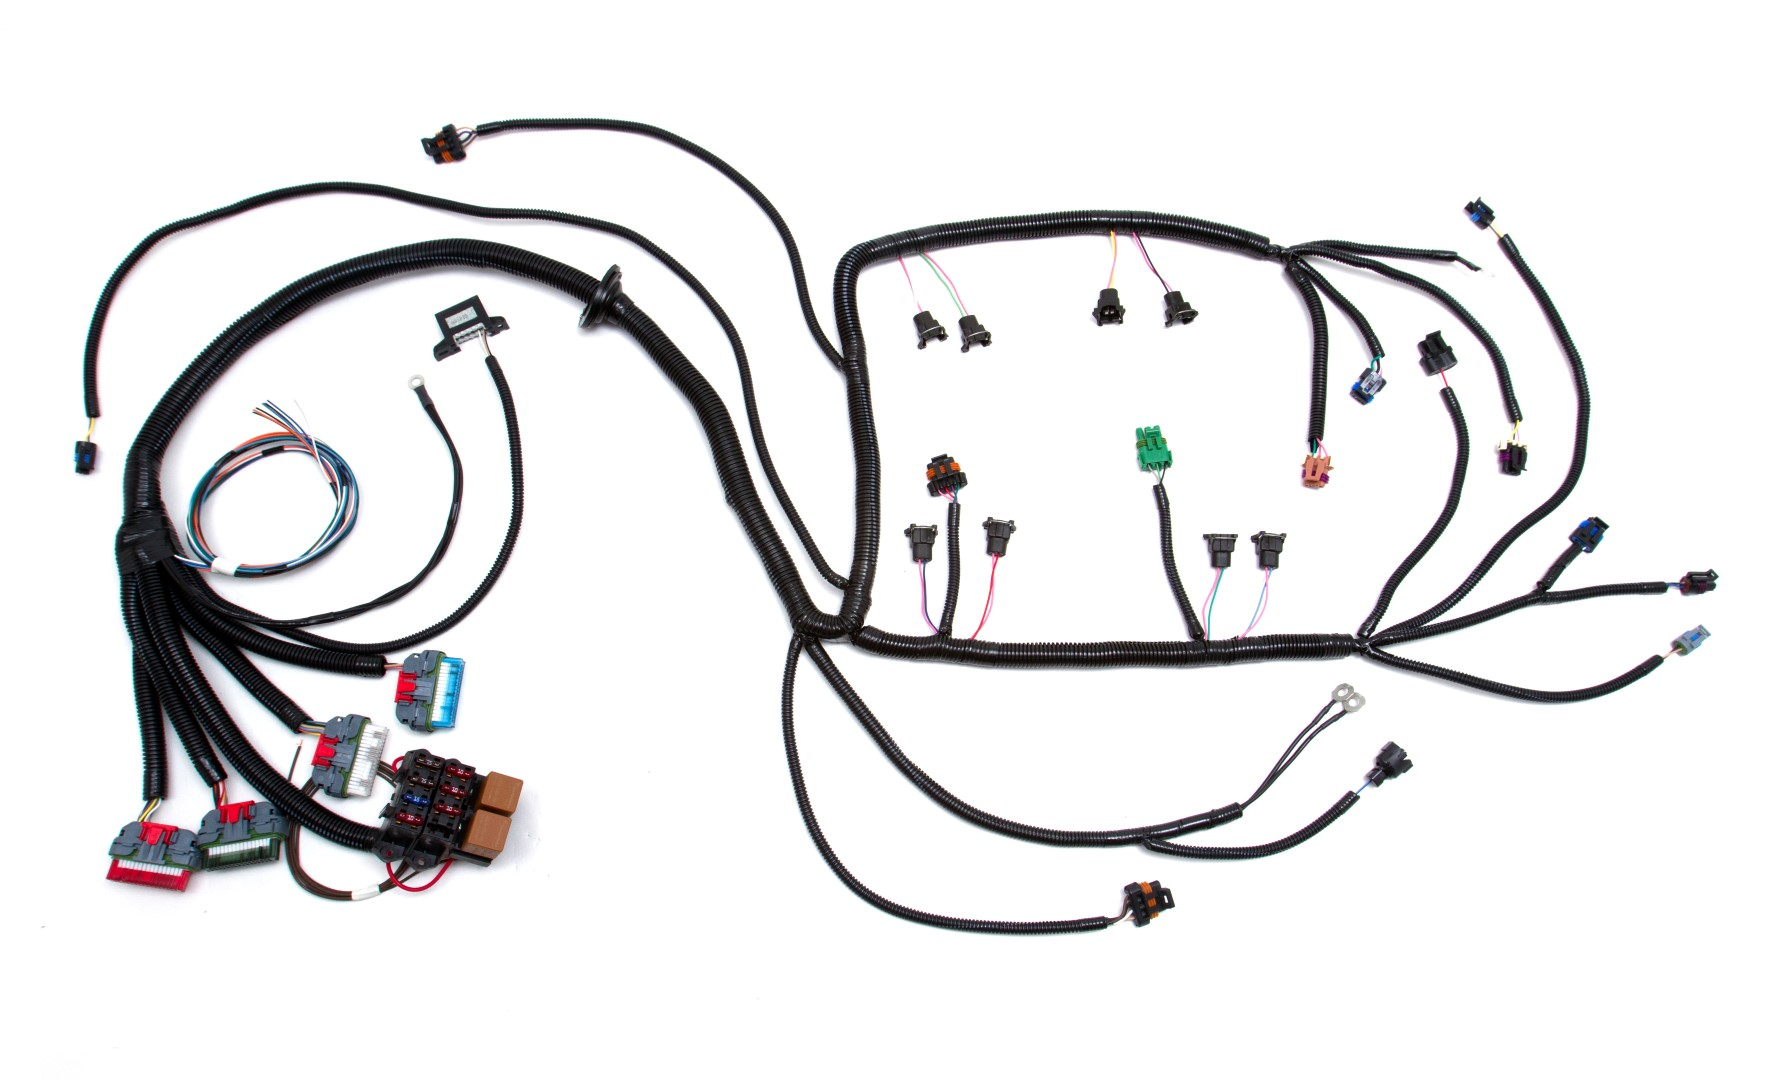 psi lt1 lt4 w t56 th350 th400 standalone wiring harness lt1 rh  psiconversion com 1996 LT1 Wiring -Diagram Pontiac Firebird Lt1 Wiring  Schematic